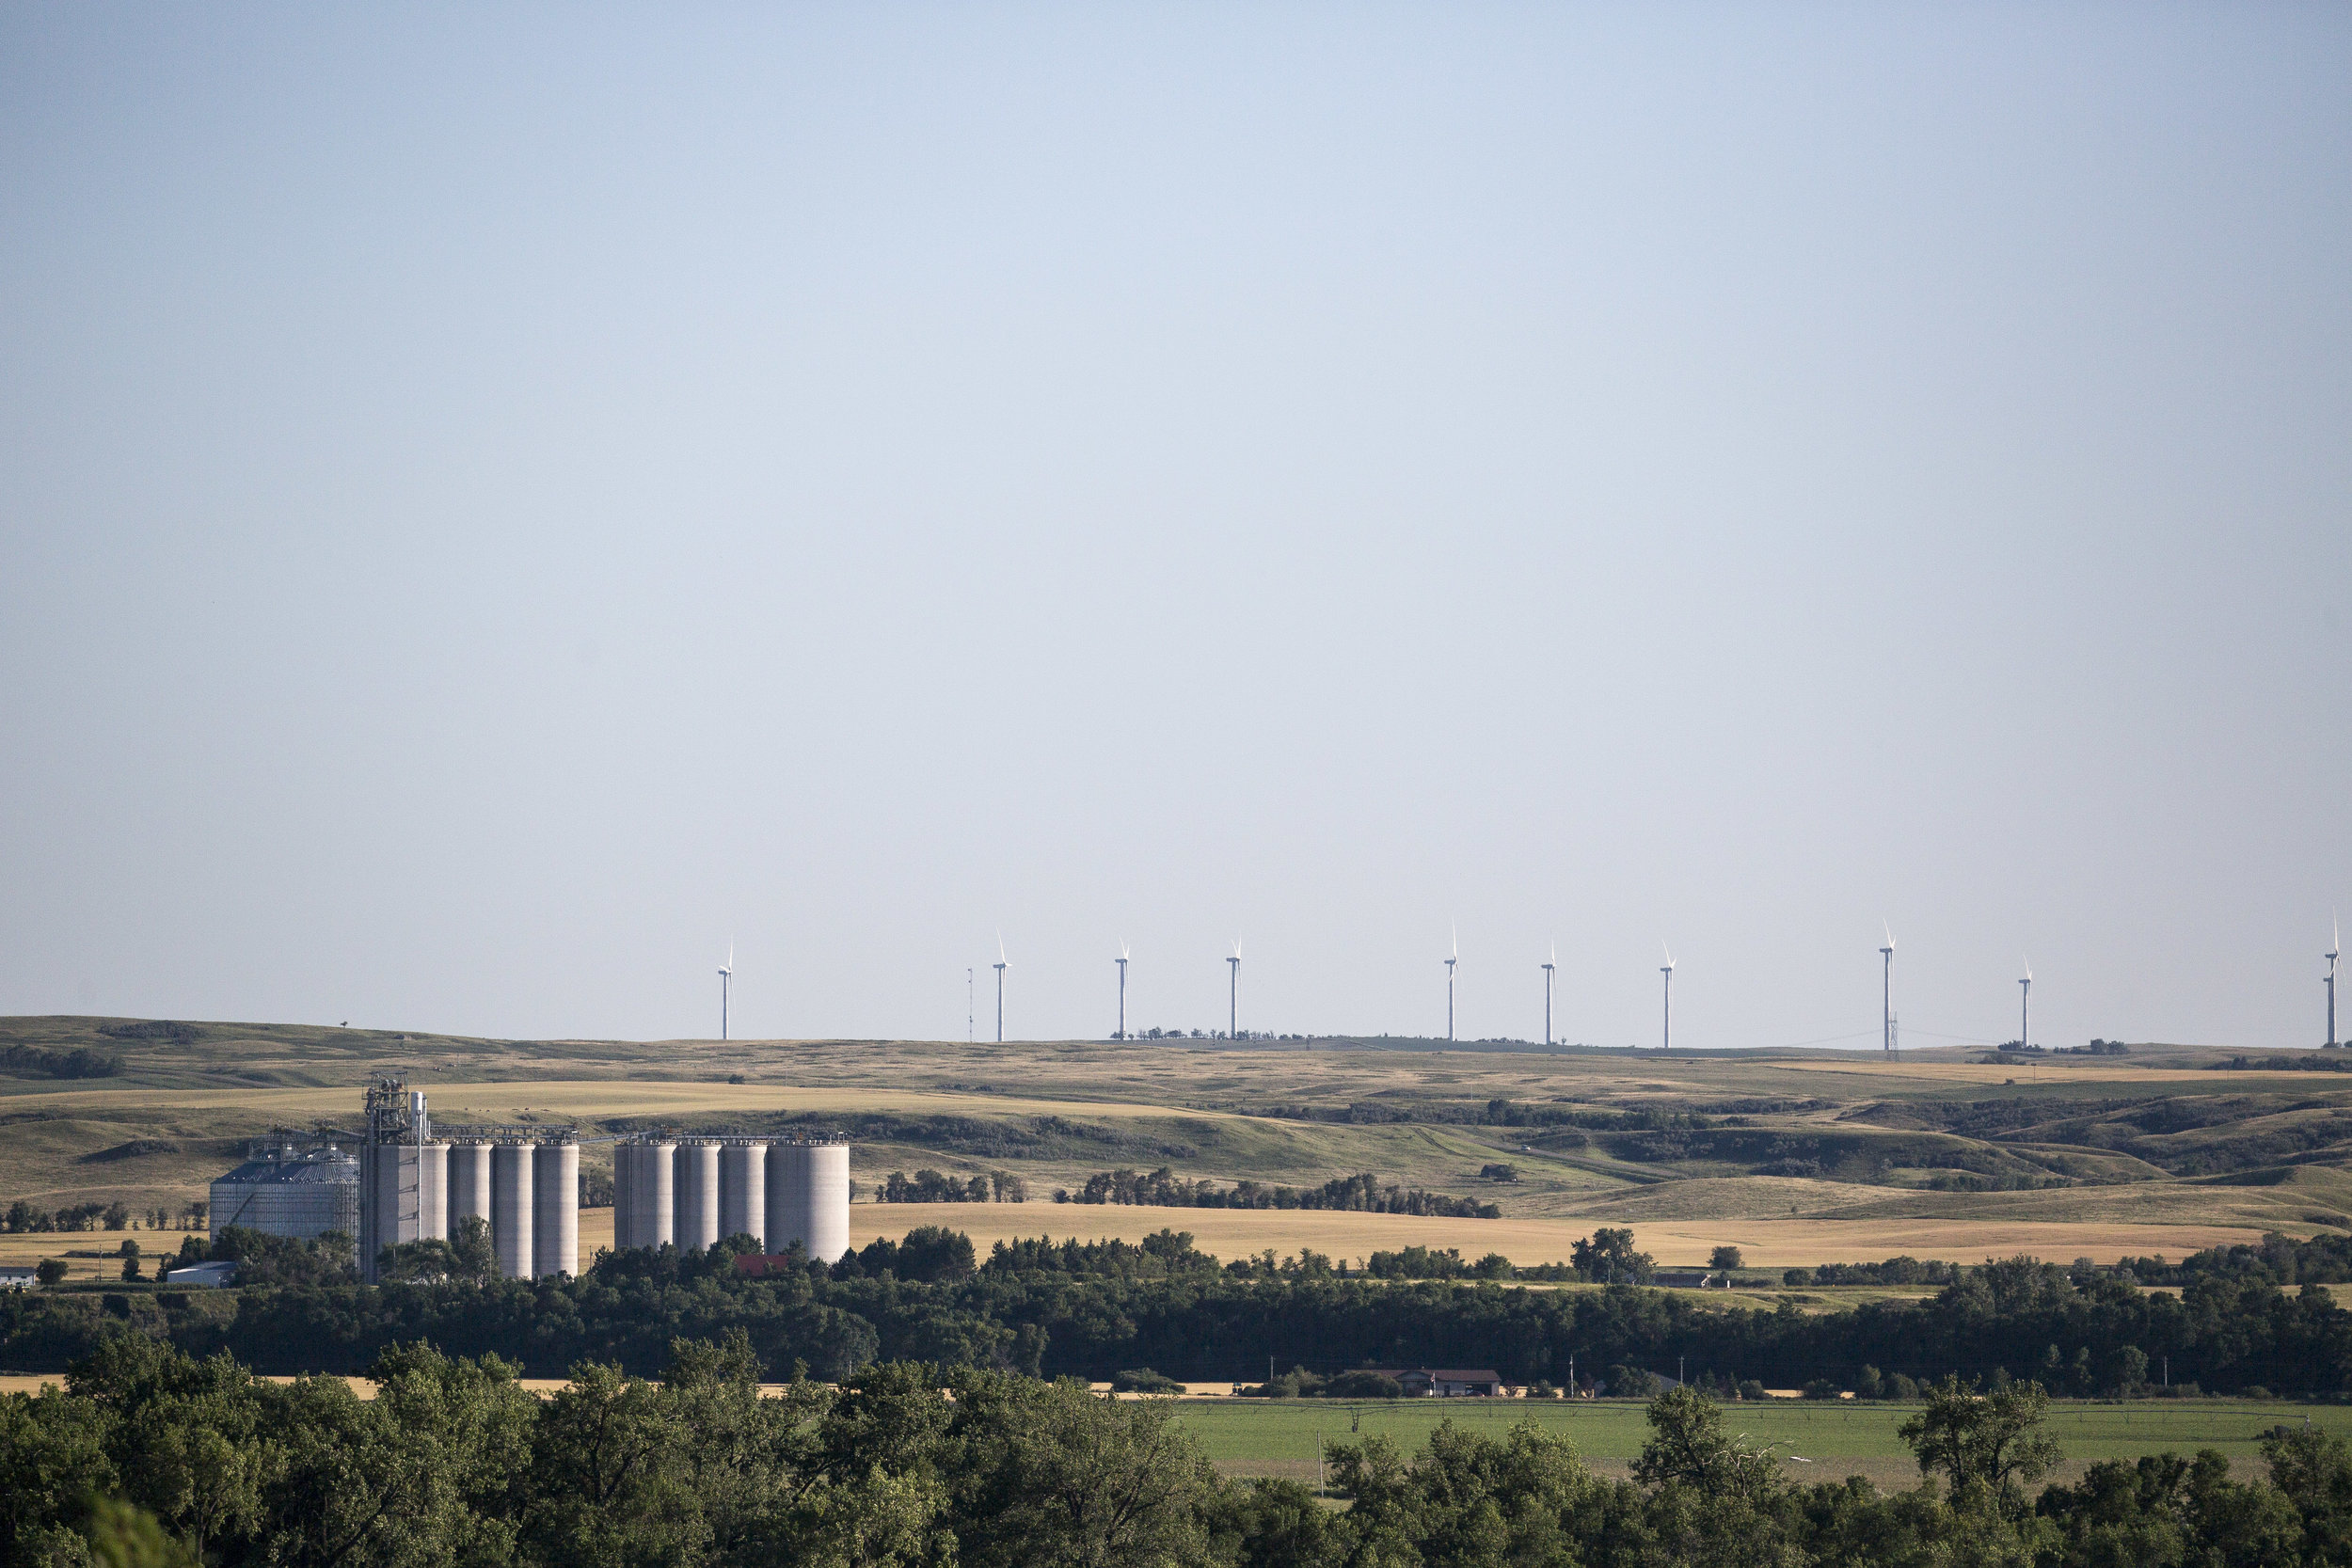 Granaries and distant windmills, looking southwest across the Missouri River from Washburn.